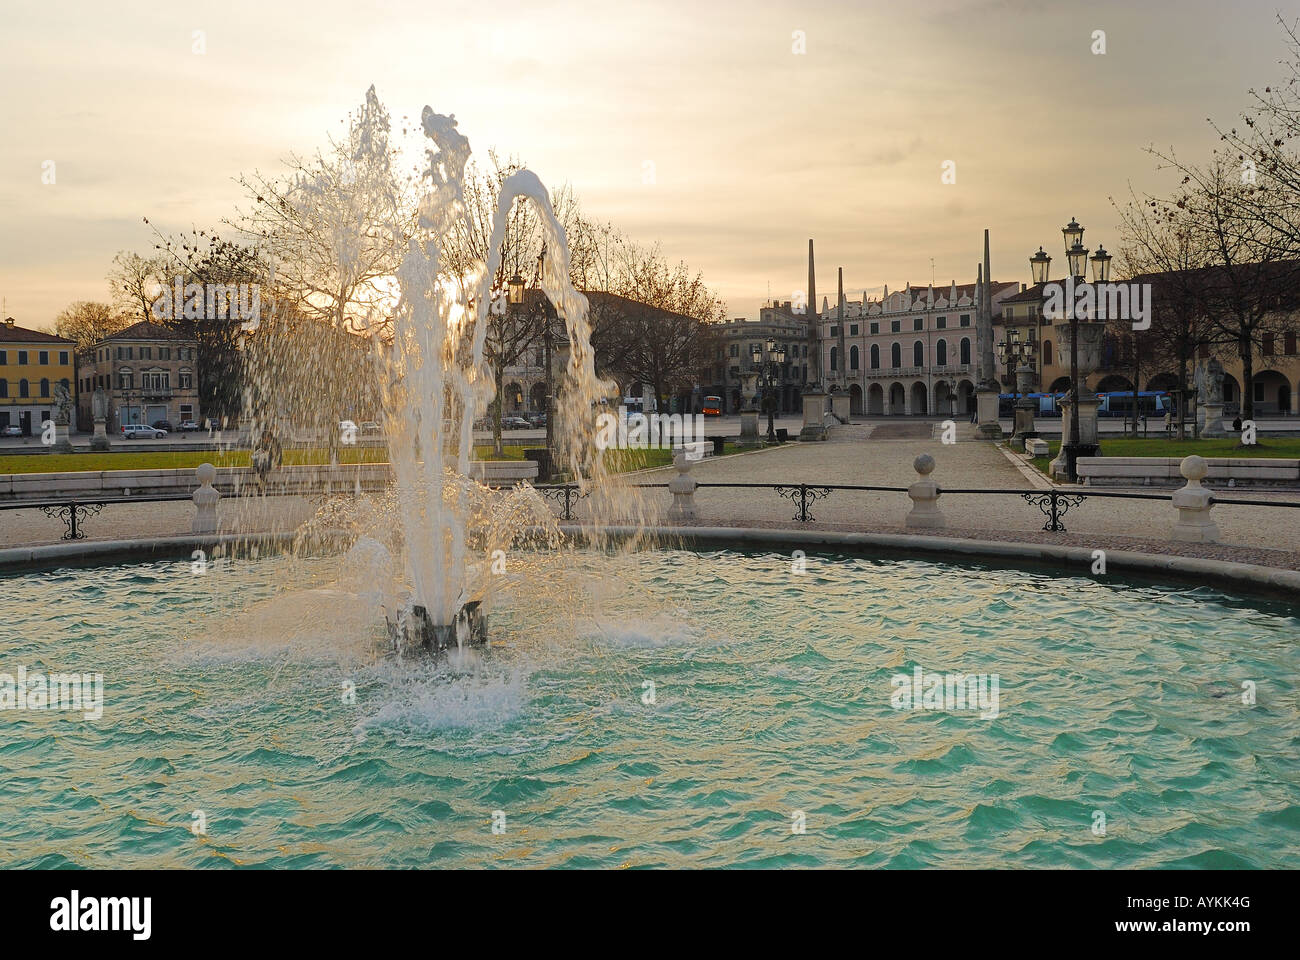 Padua,Veneto,Italy,Prato della Valle,one of the largest squares in Europe at sunset - Stock Image